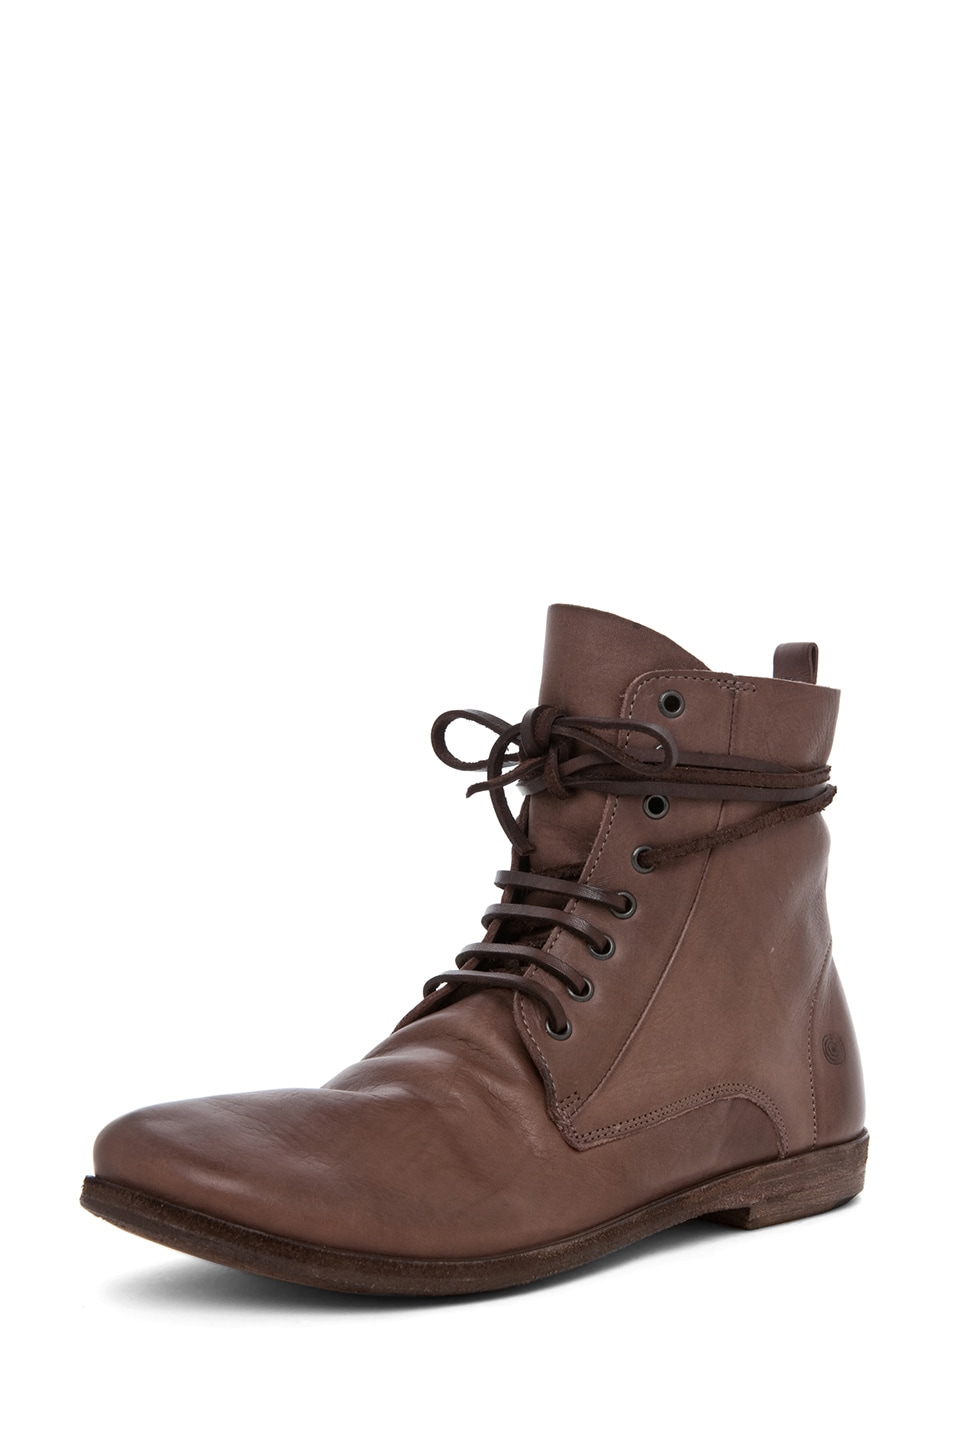 Image 2 of Marsell Lista Boots in Taupe